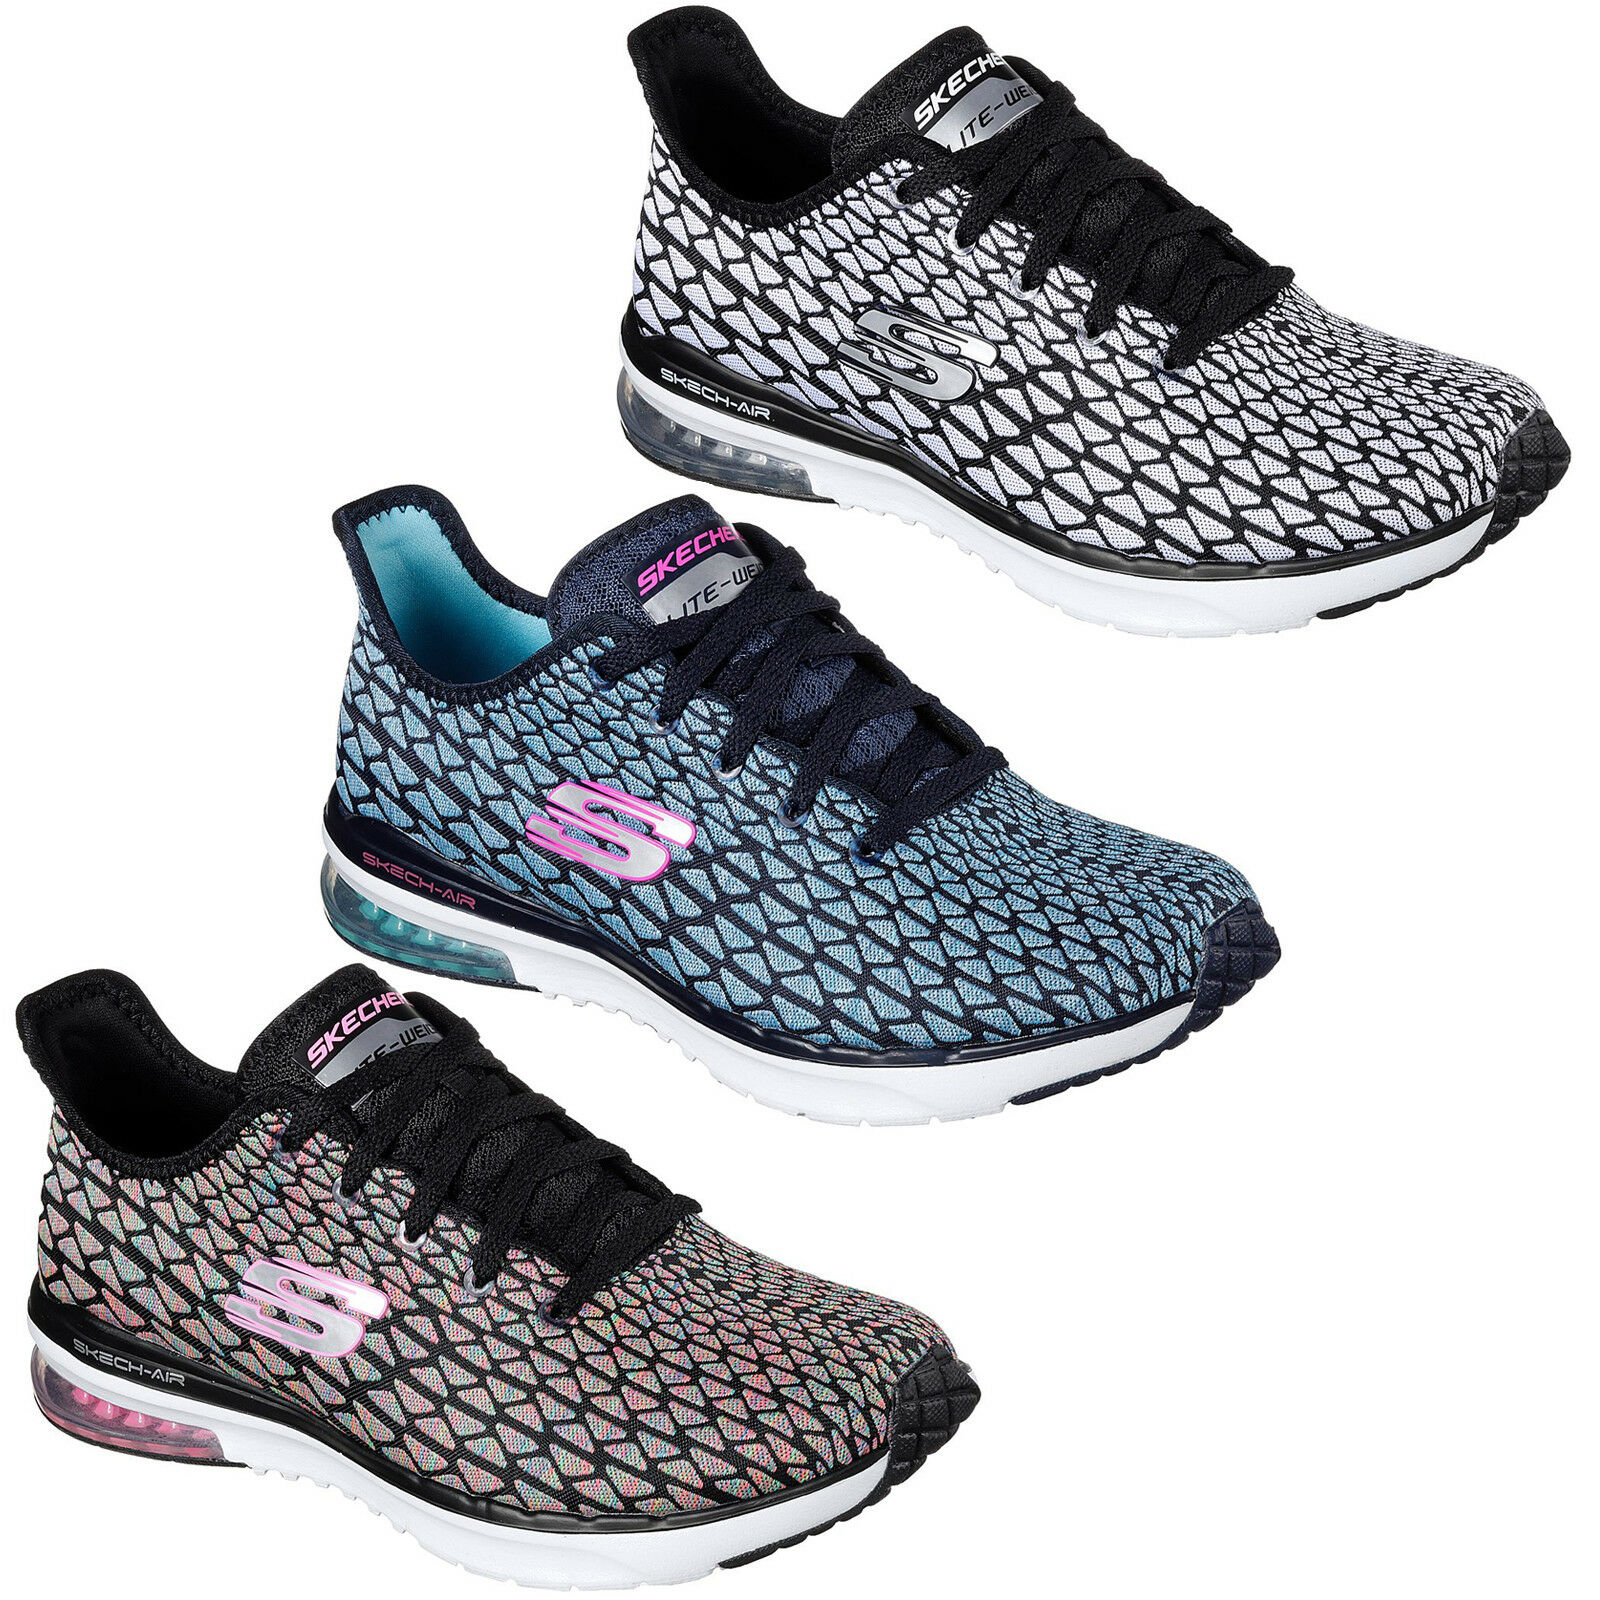 Skechers Skech-Air Infinity Free Fallin Trainers Memory Foam Sports shoes Womens